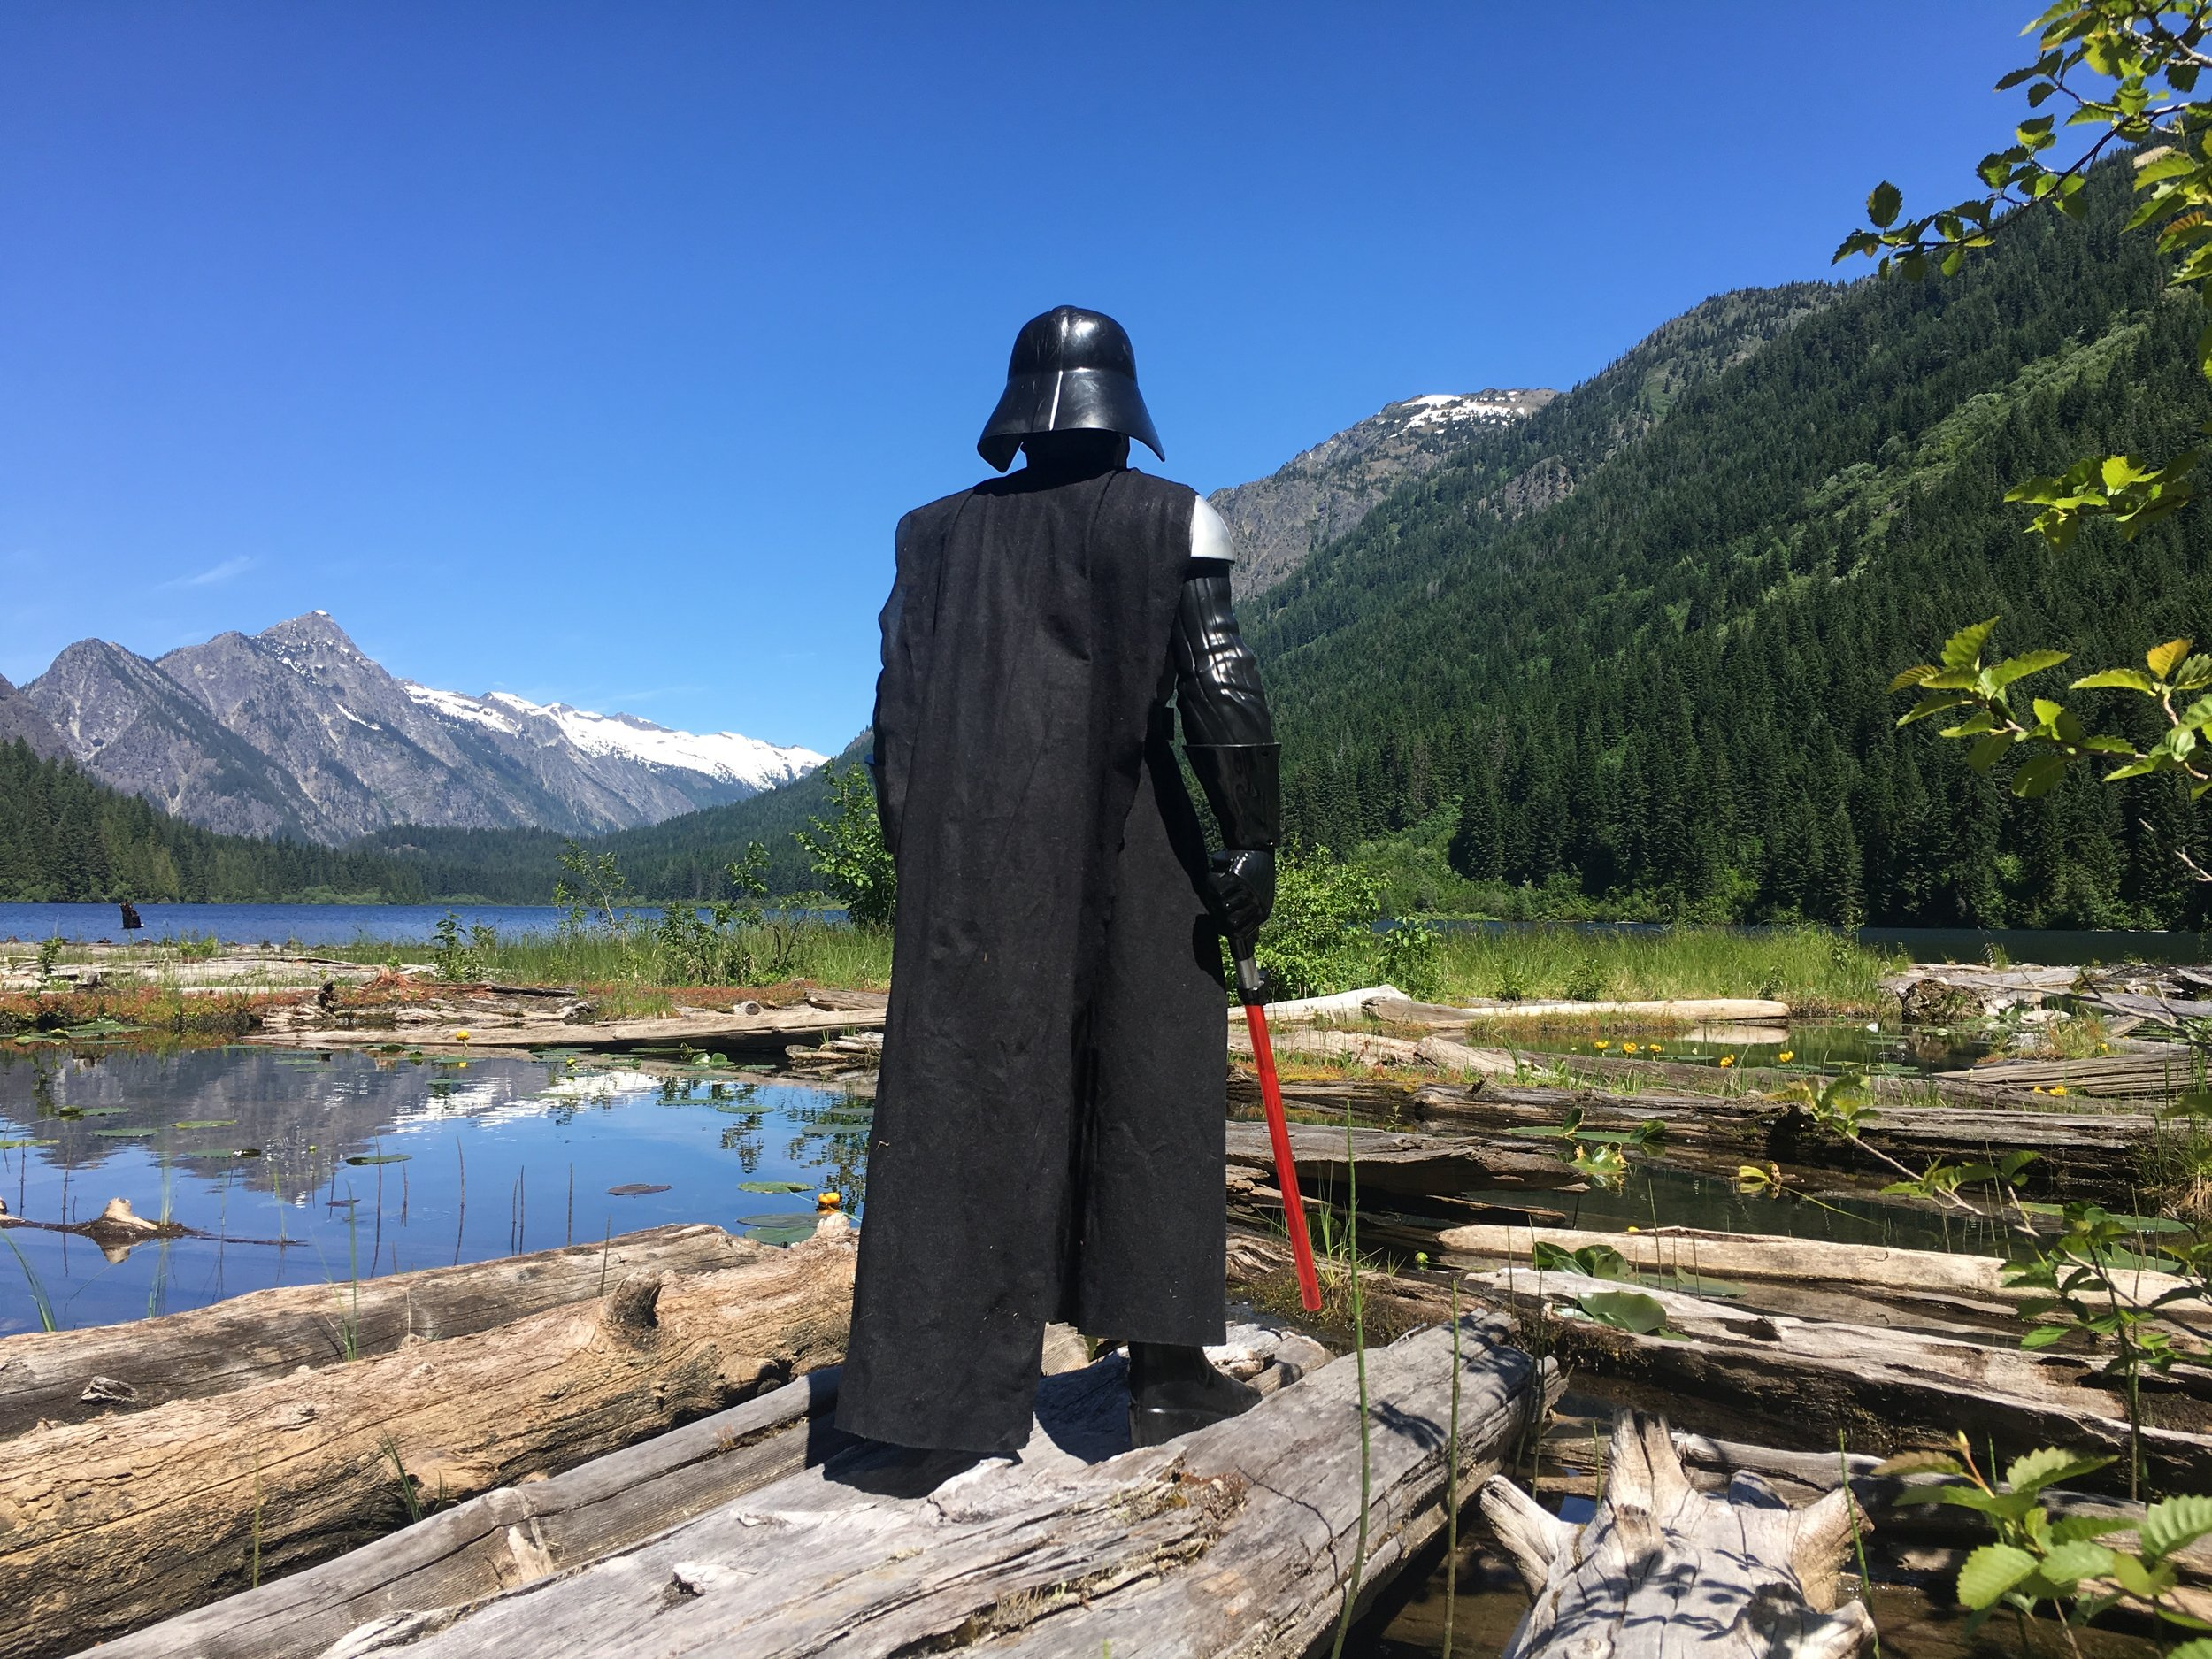 Dark side of the mountain